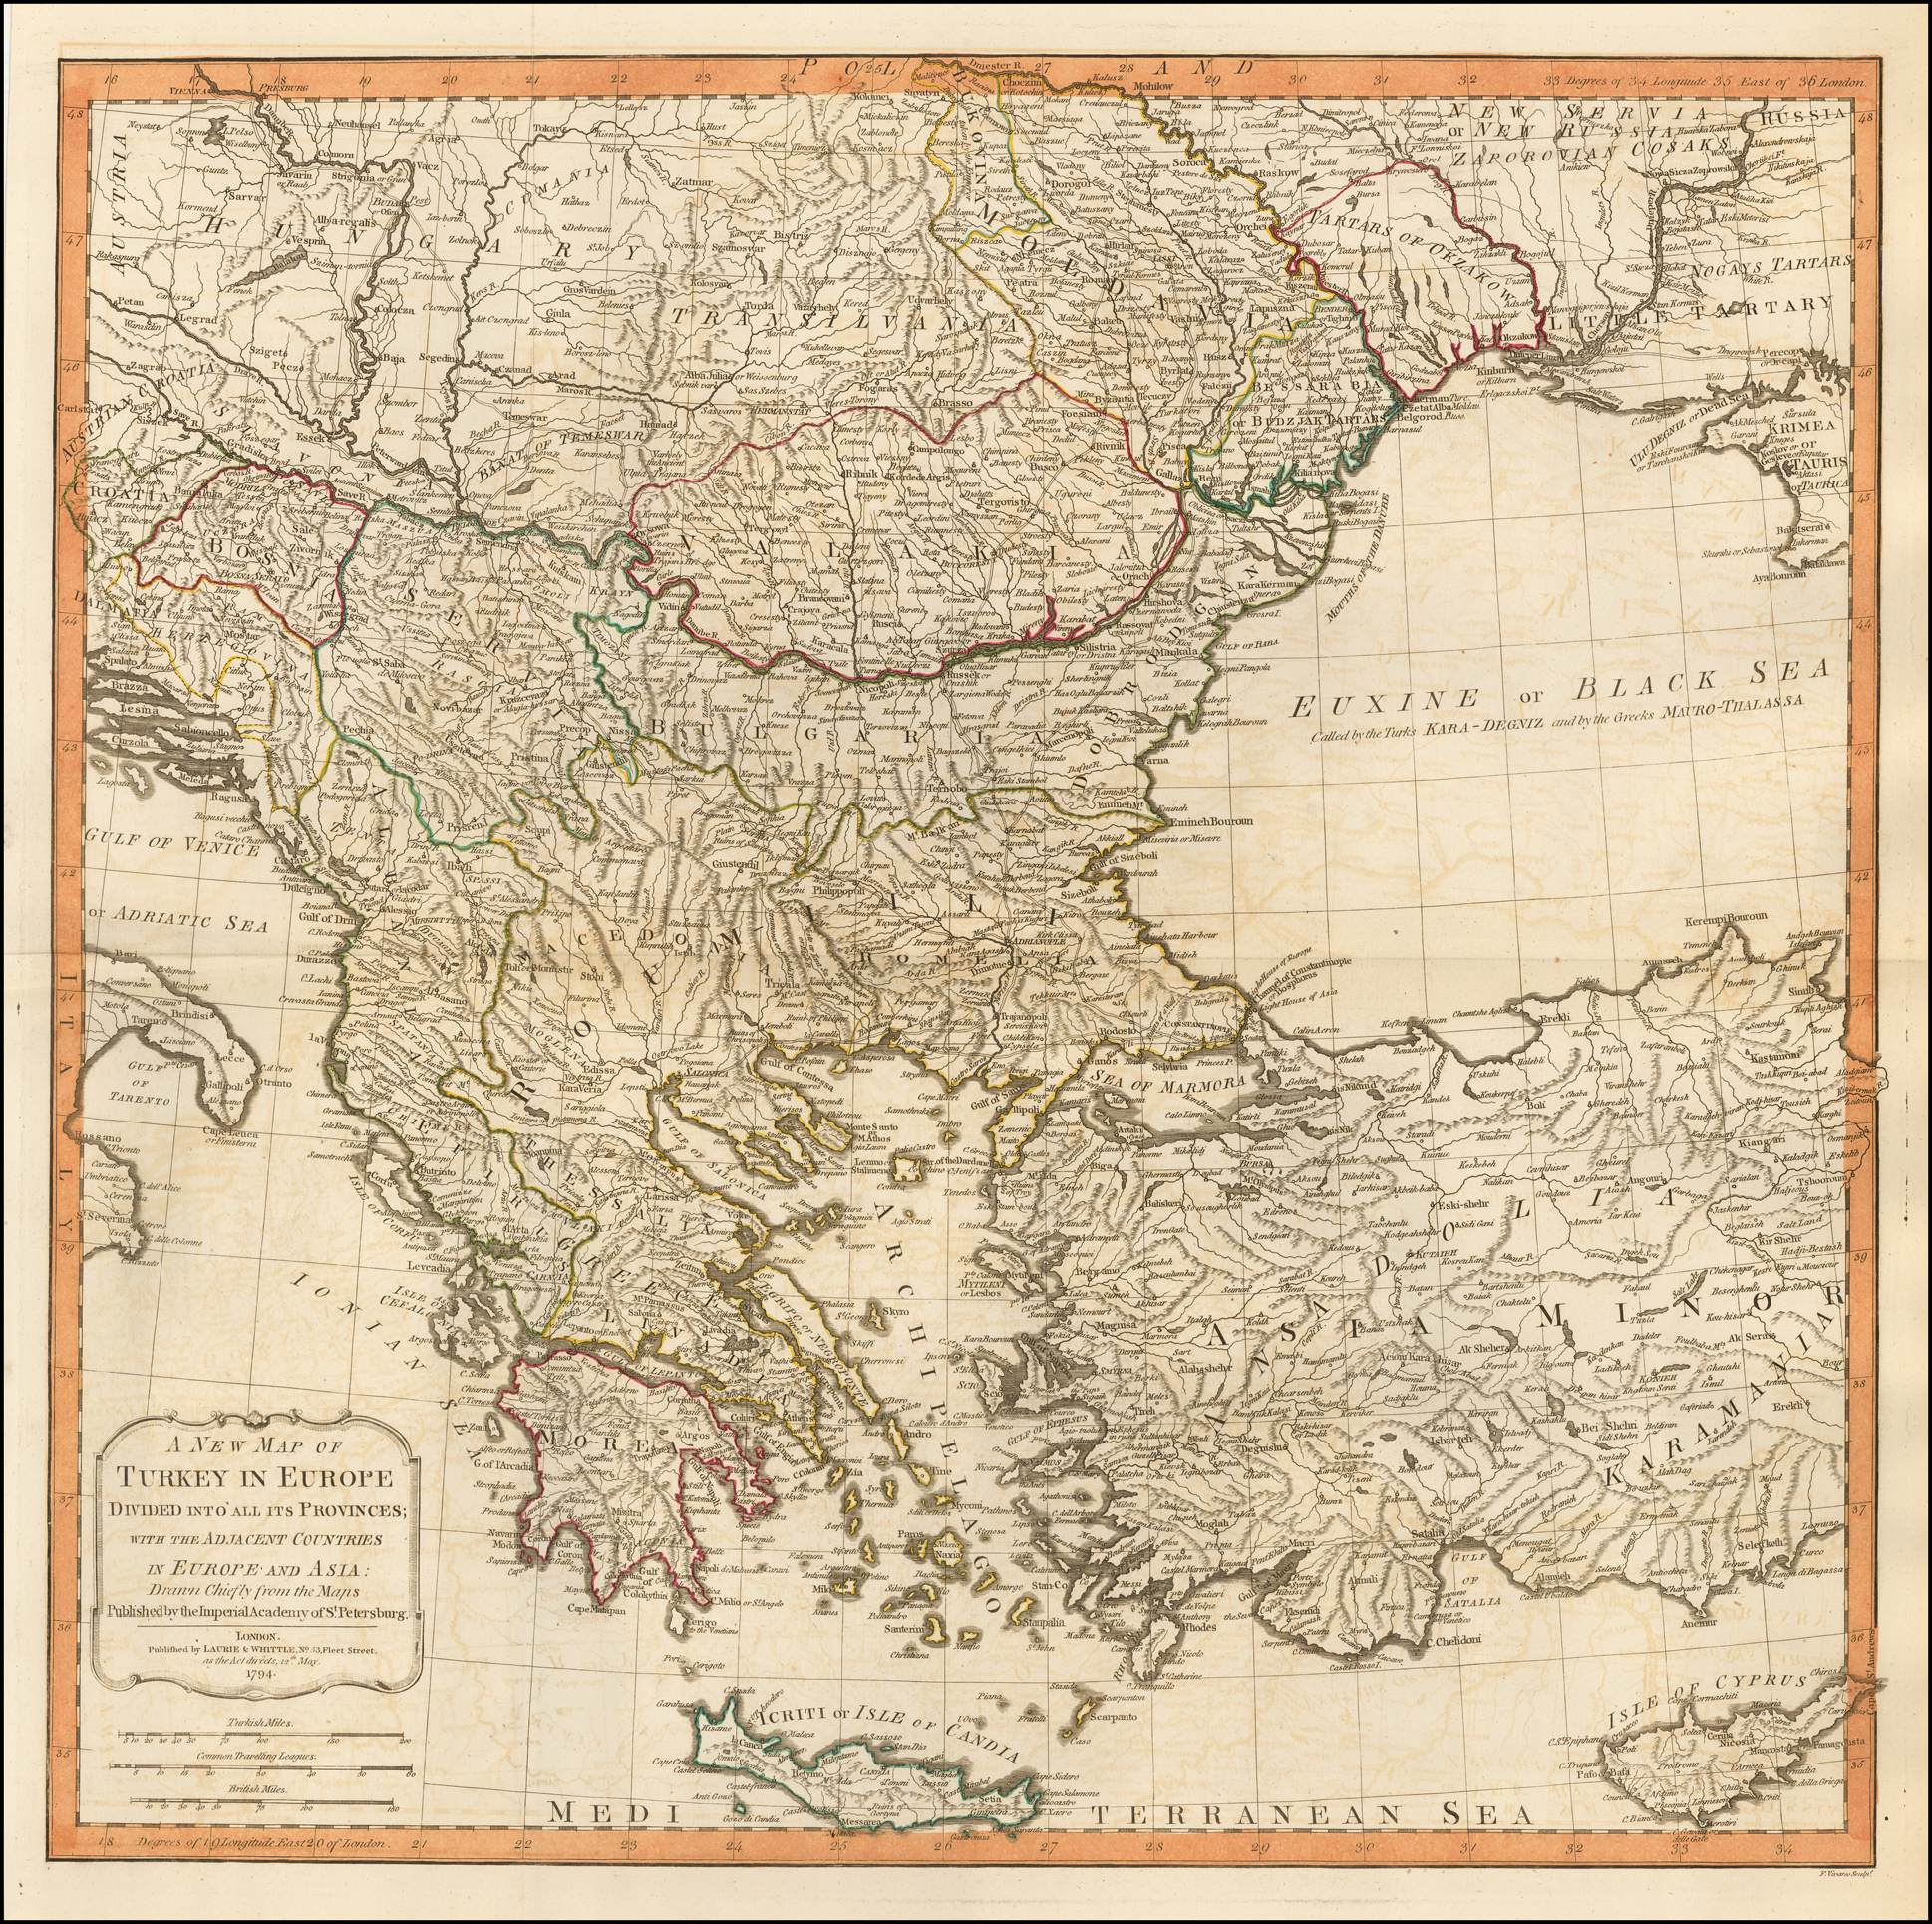 Image of: A New Map Of Turkey In Europe Divided Into All Its Provinces With The Adjacent Countries Of Europe And Asia 1794 Shows Cyprus Barry Lawrence Ruderman Antique Maps Inc